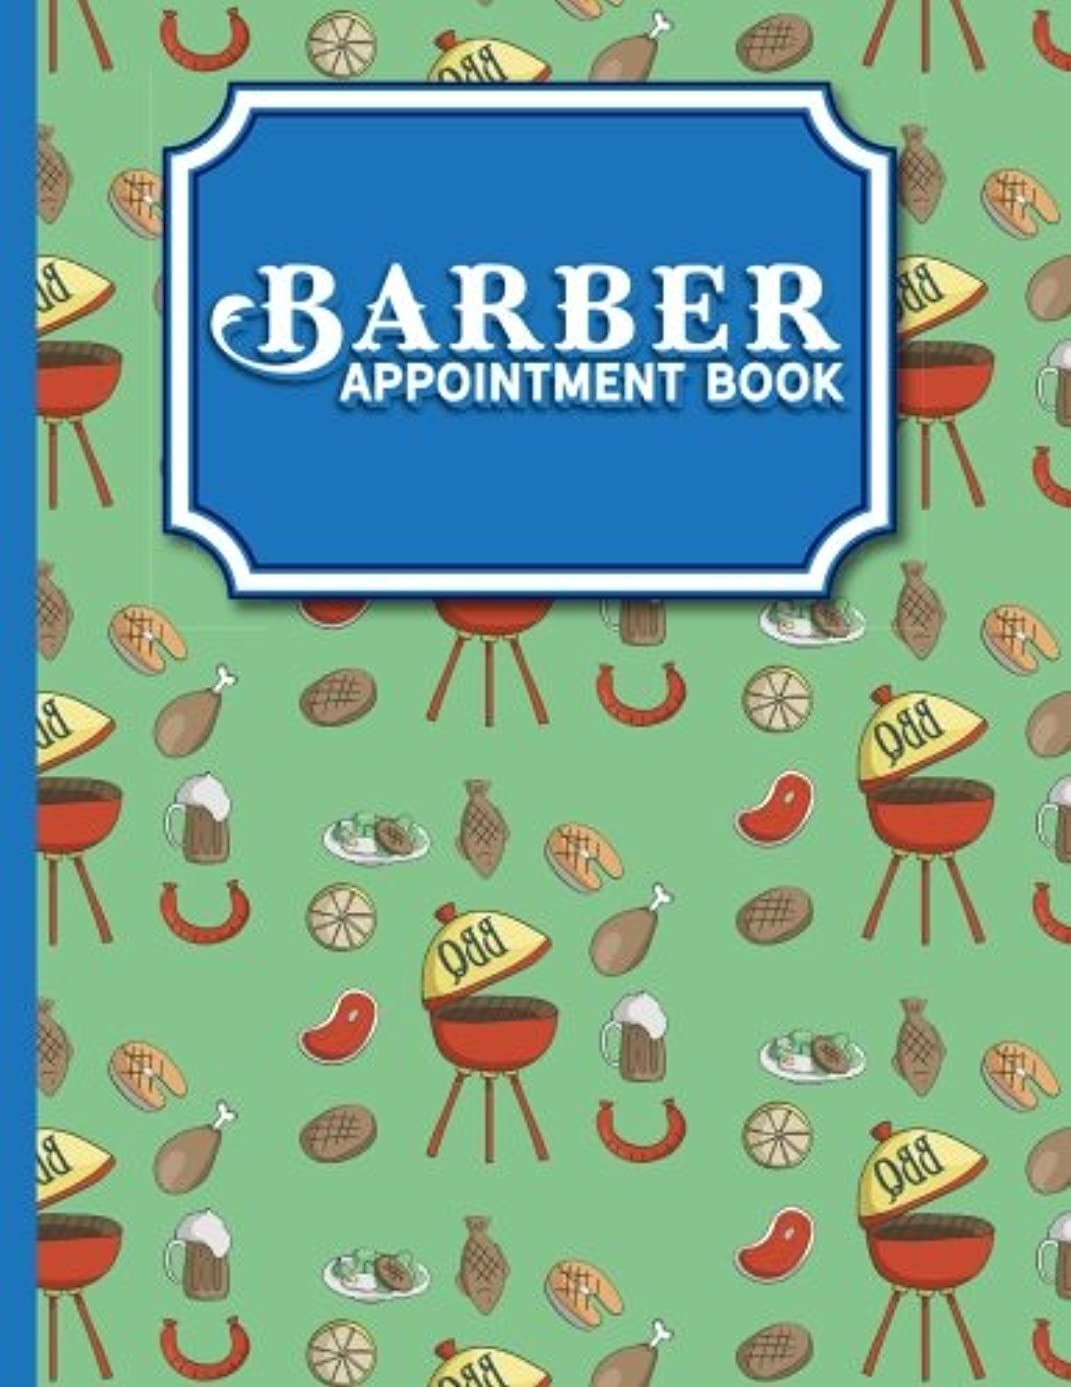 Barber Appointment Book: 7 Columns Appointment Desk Book, Appointment Scheduler, Daily Appointment Scheduler, Cute BBQ Cover (Volume 6)